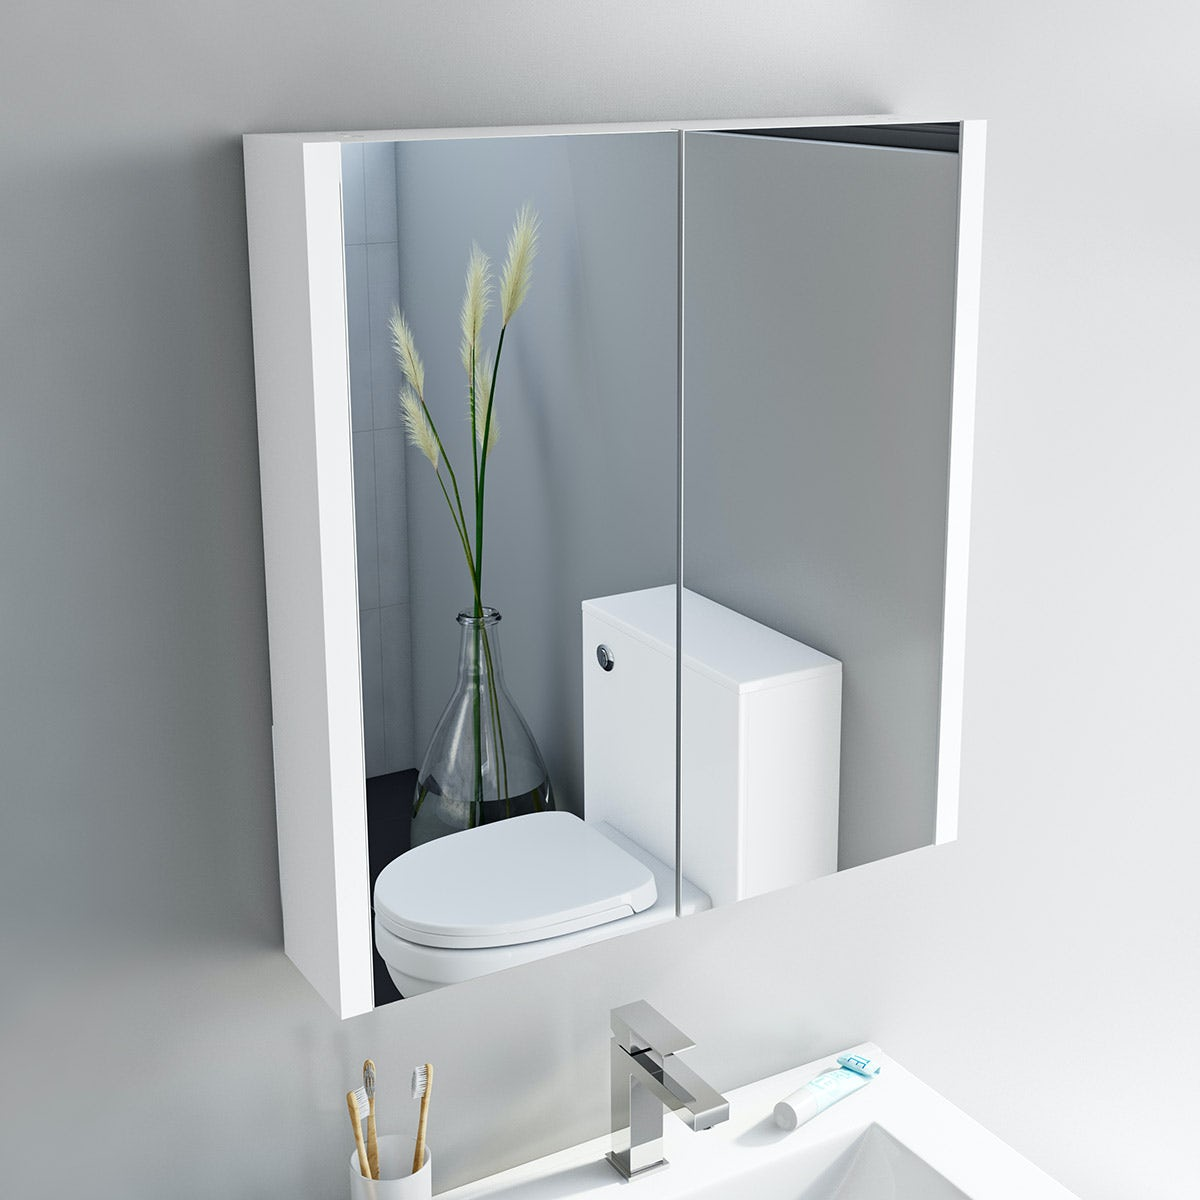 Victoria plumb mirrored bathroom cabinets for Bathroom cabinets victoria plumb